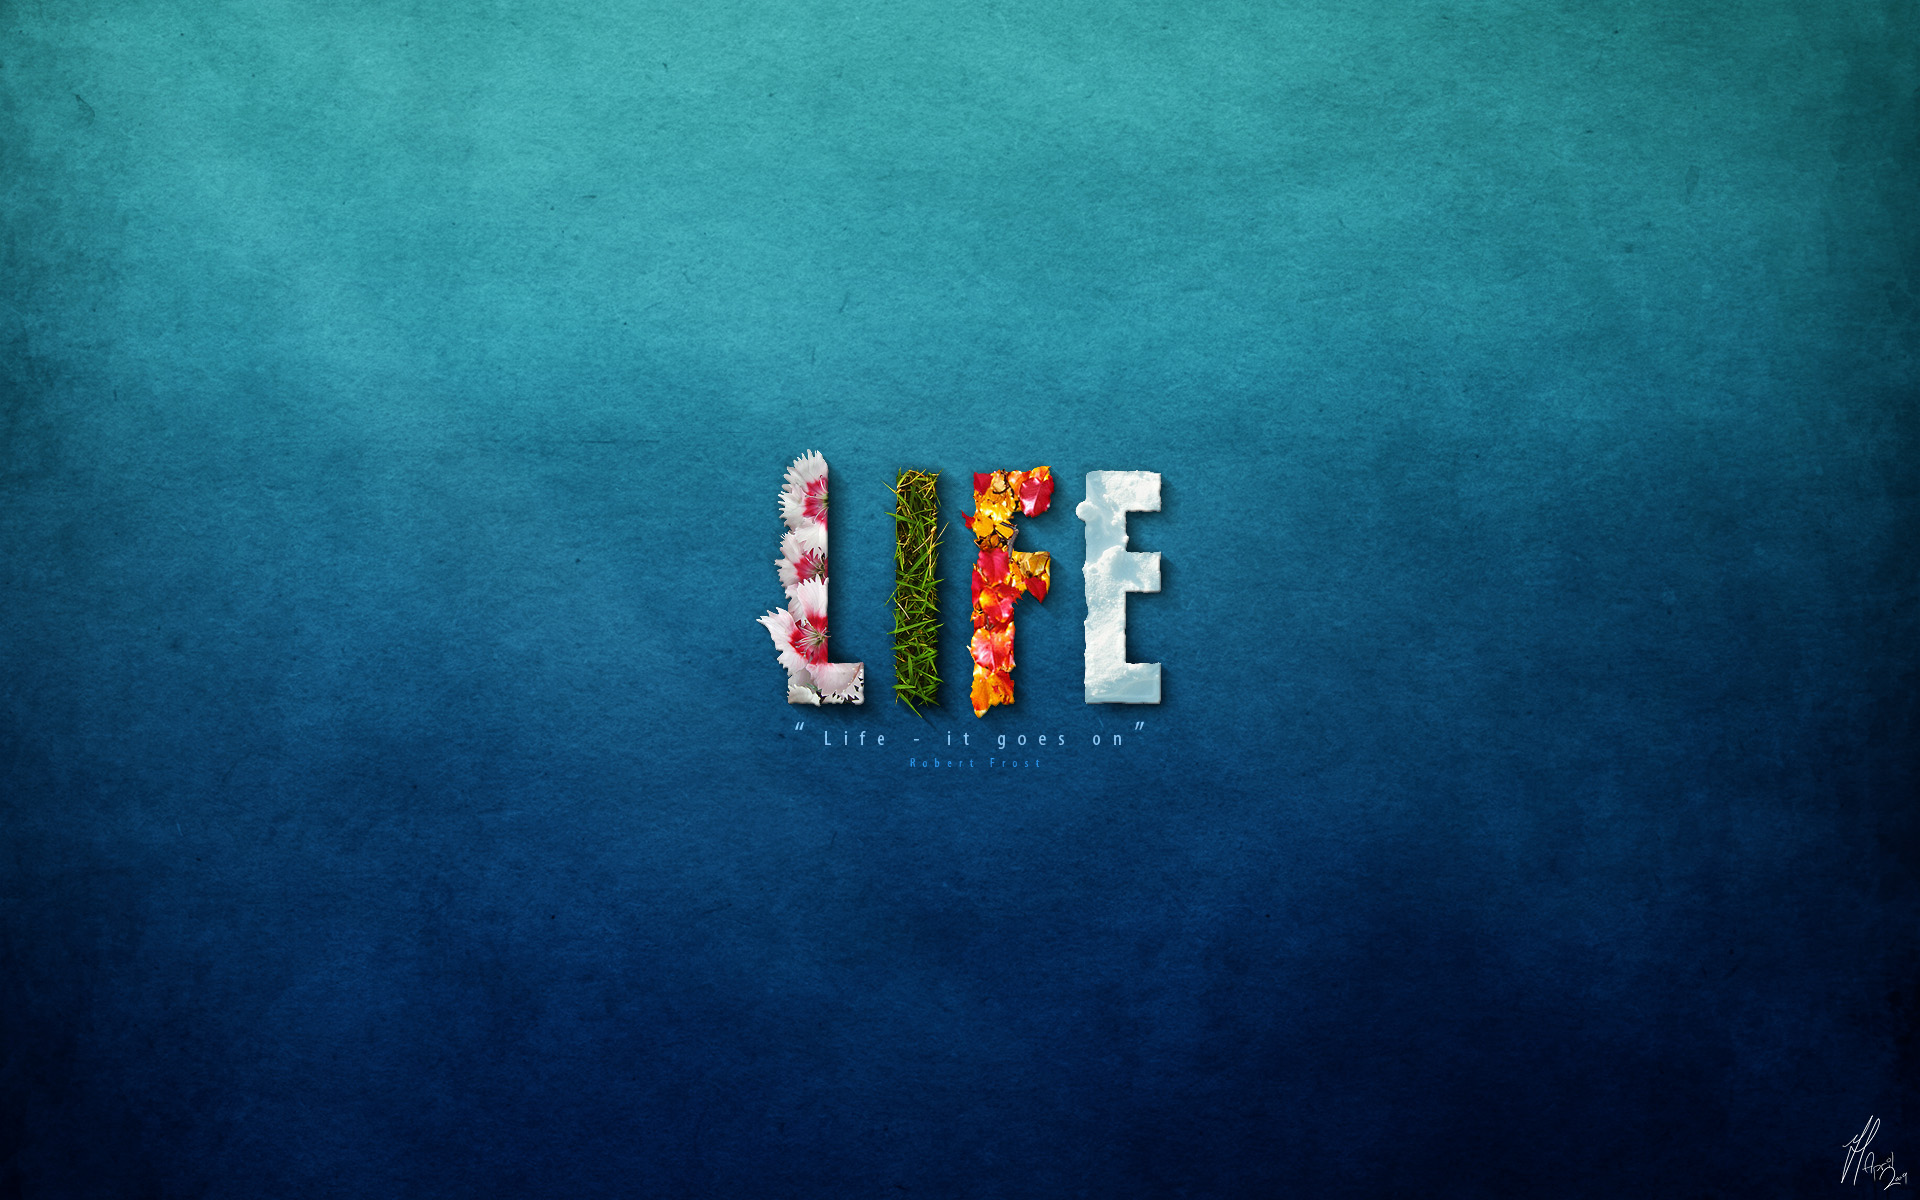 life by mushir customization wallpaper hdtv widescreen 2009 2015 1920x1200